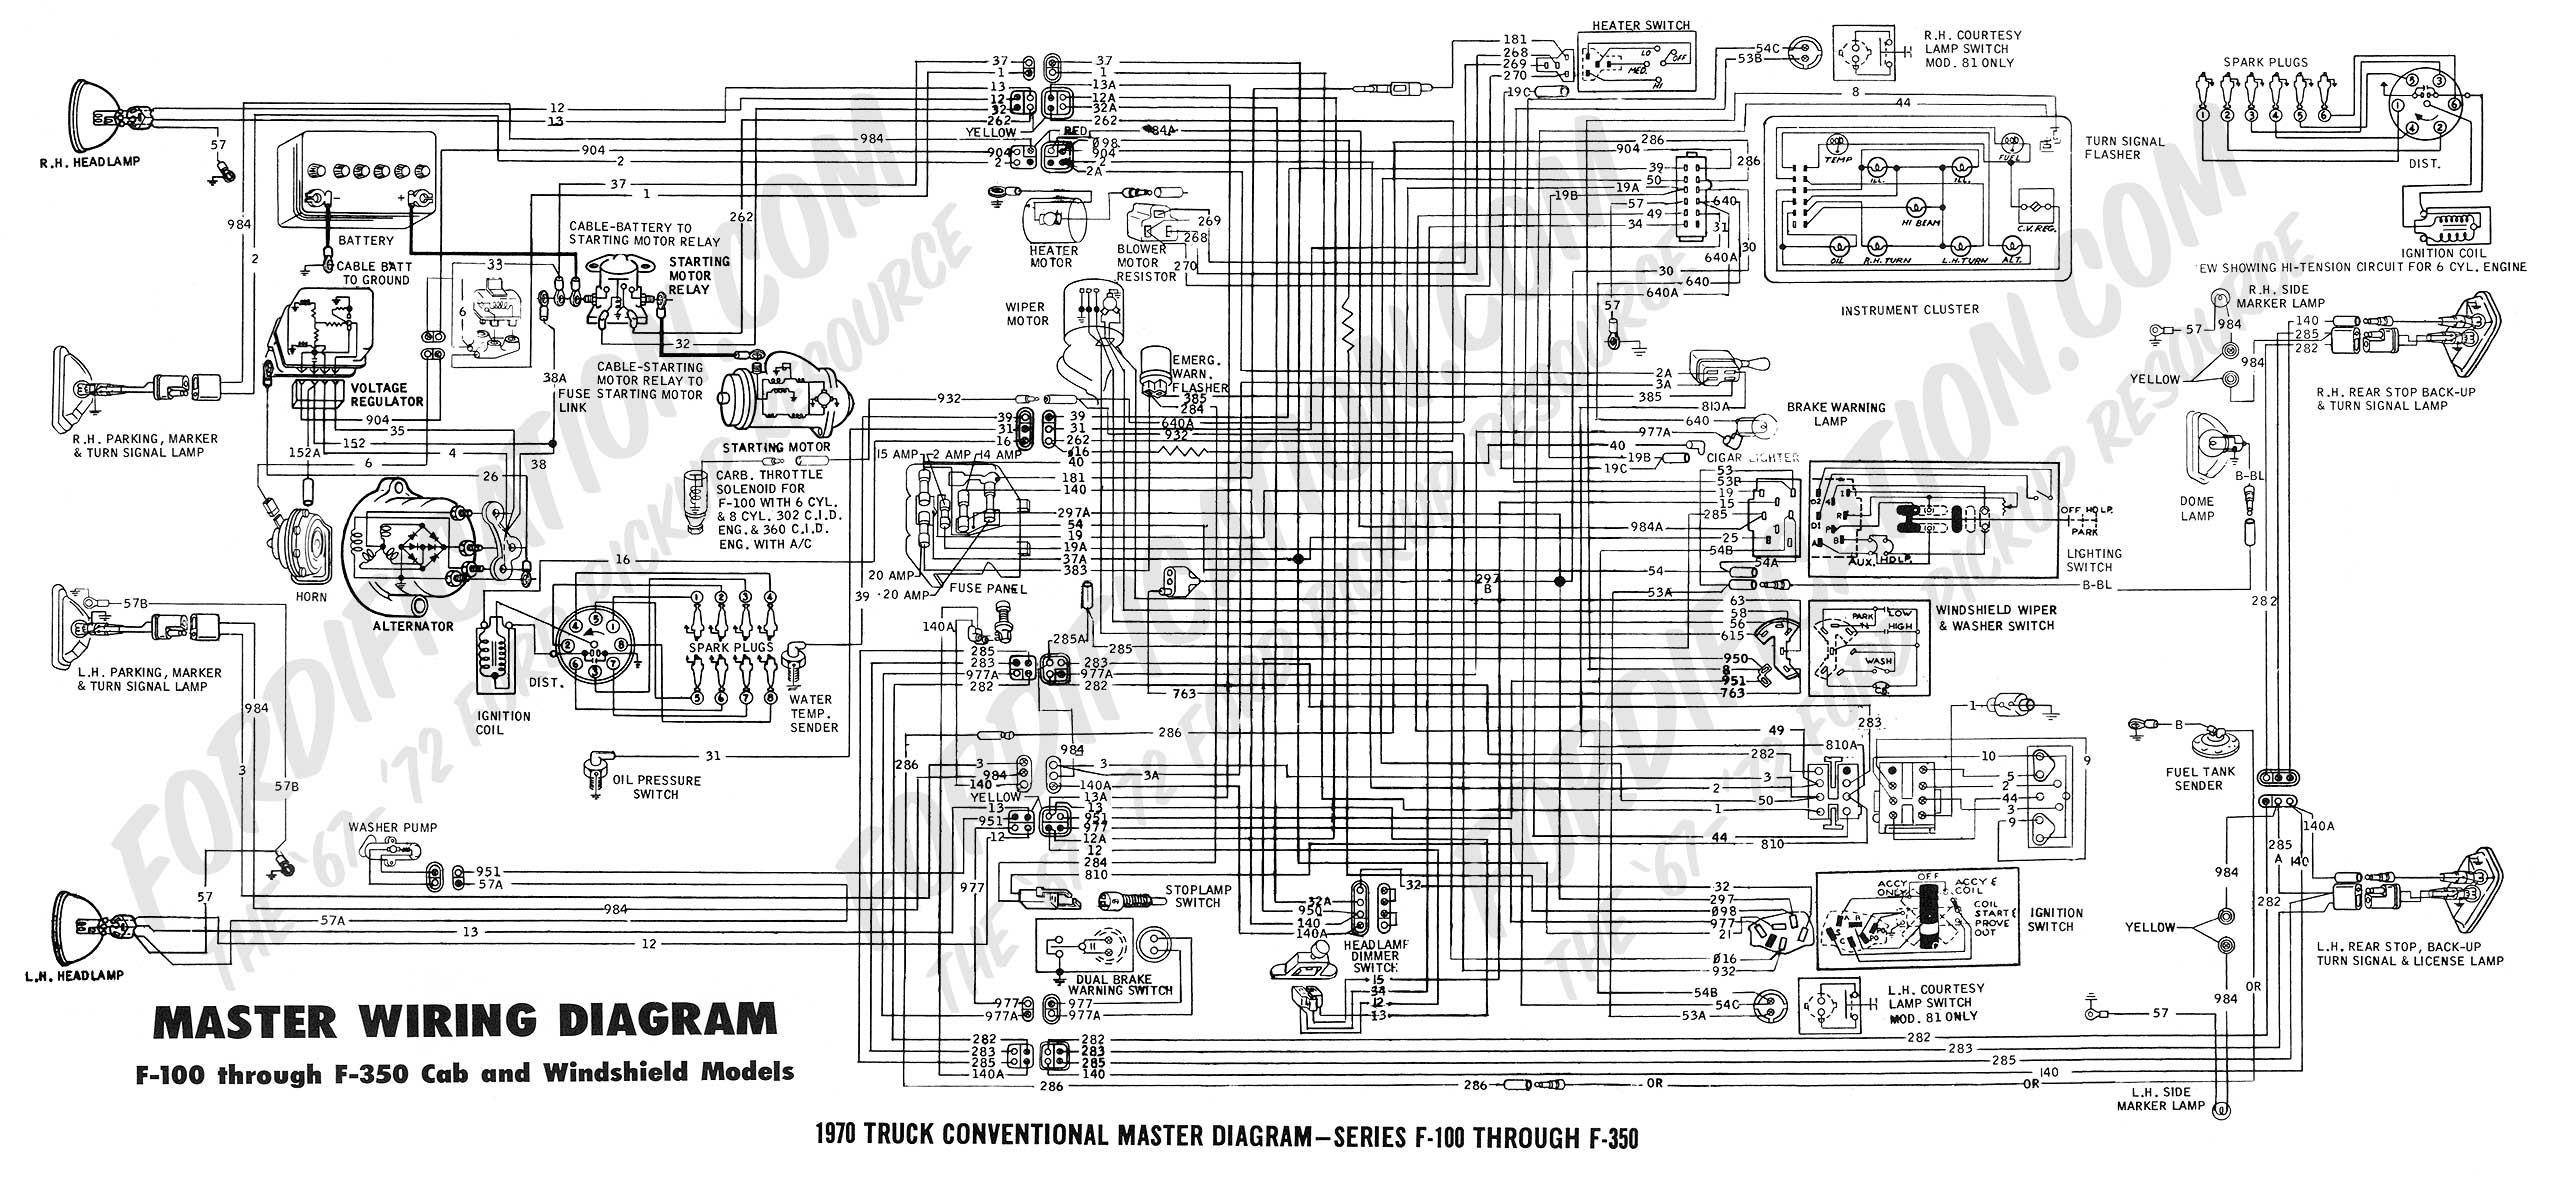 1986 ford mustang wiring diagram free download wiring diagrams 86 ford f250 wiring diagram free download wiring diagrams schematics 1986 ford mustang wiring diagram 8 at fender mustang wiring diagram sciox Images